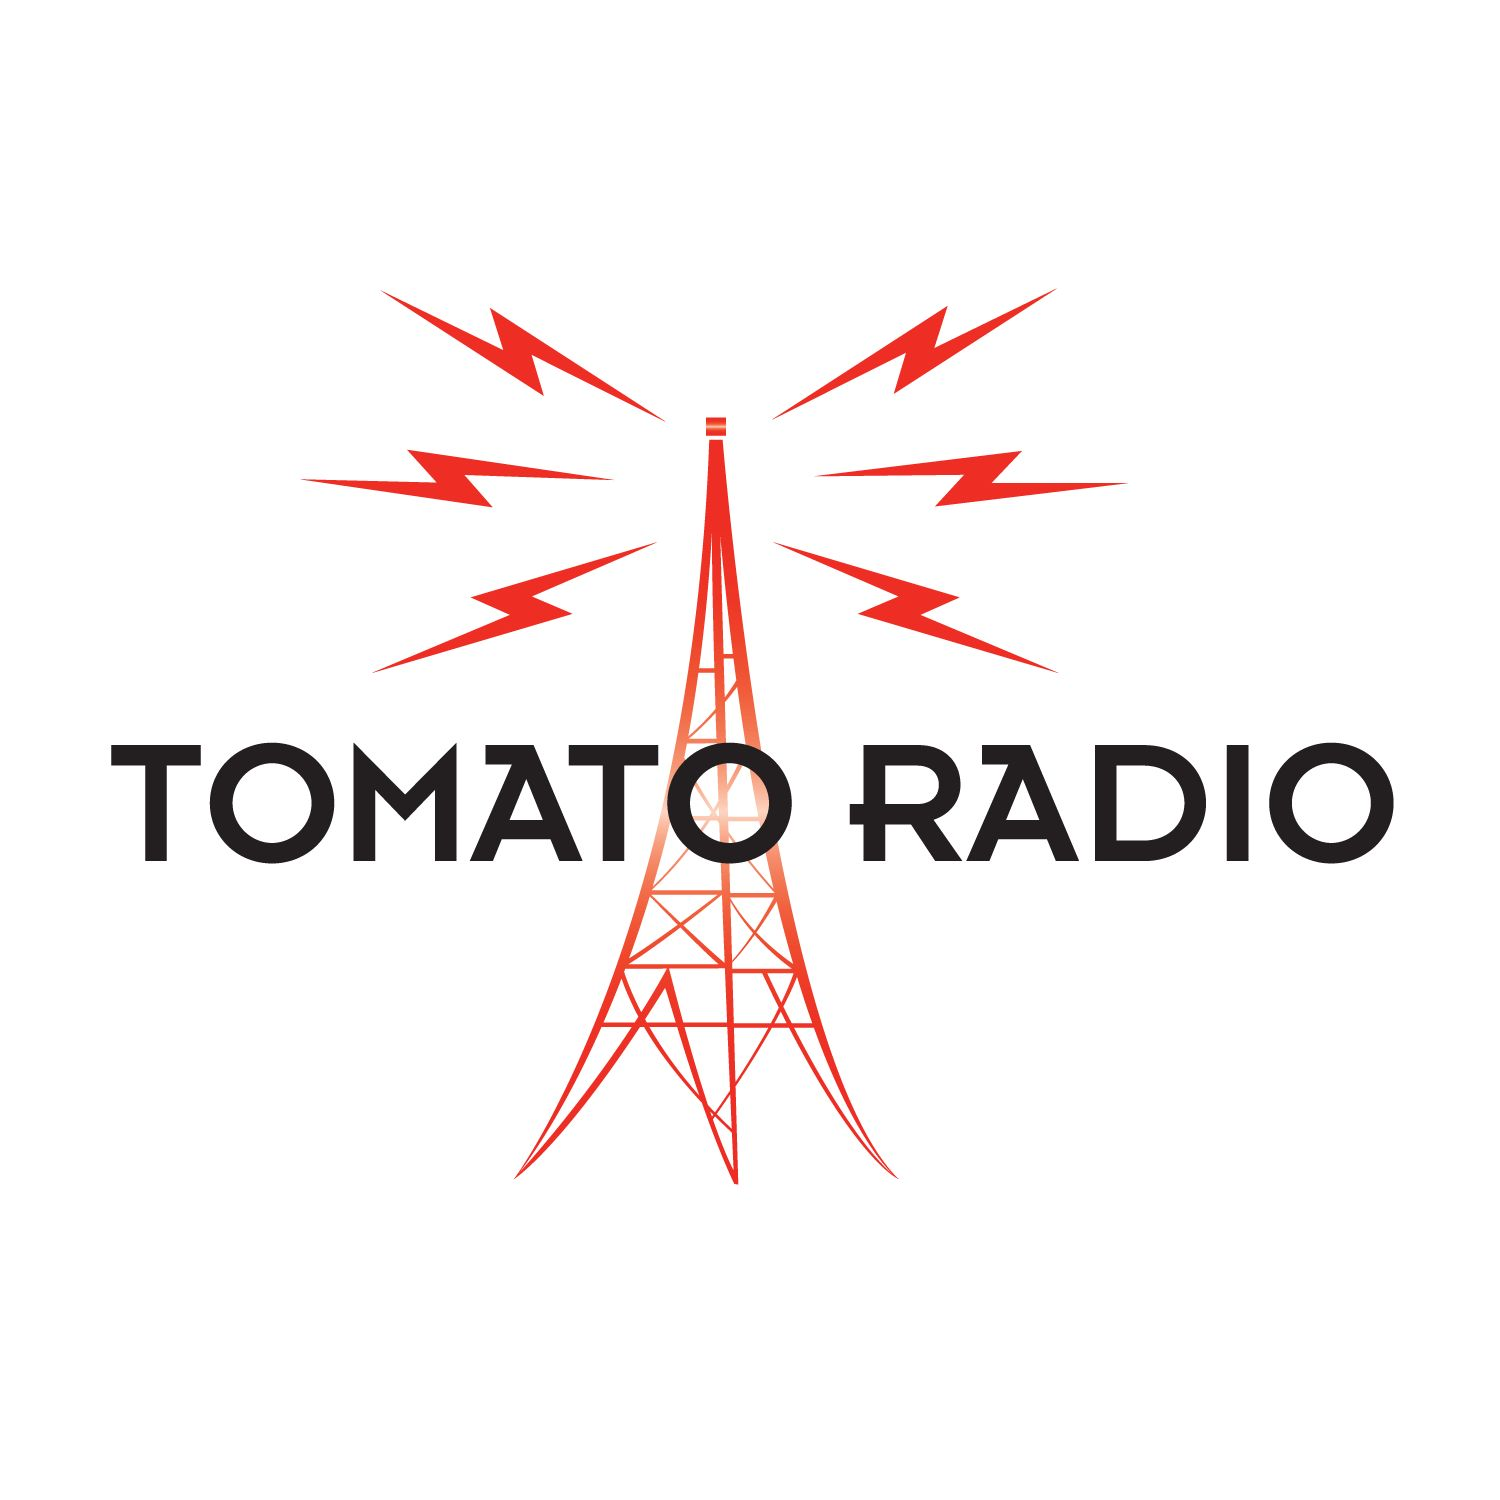 Tomato Radio - Tomato Radio is a podcast about food and drink, hosted by Mary Bailey and Amanda LeNeve.